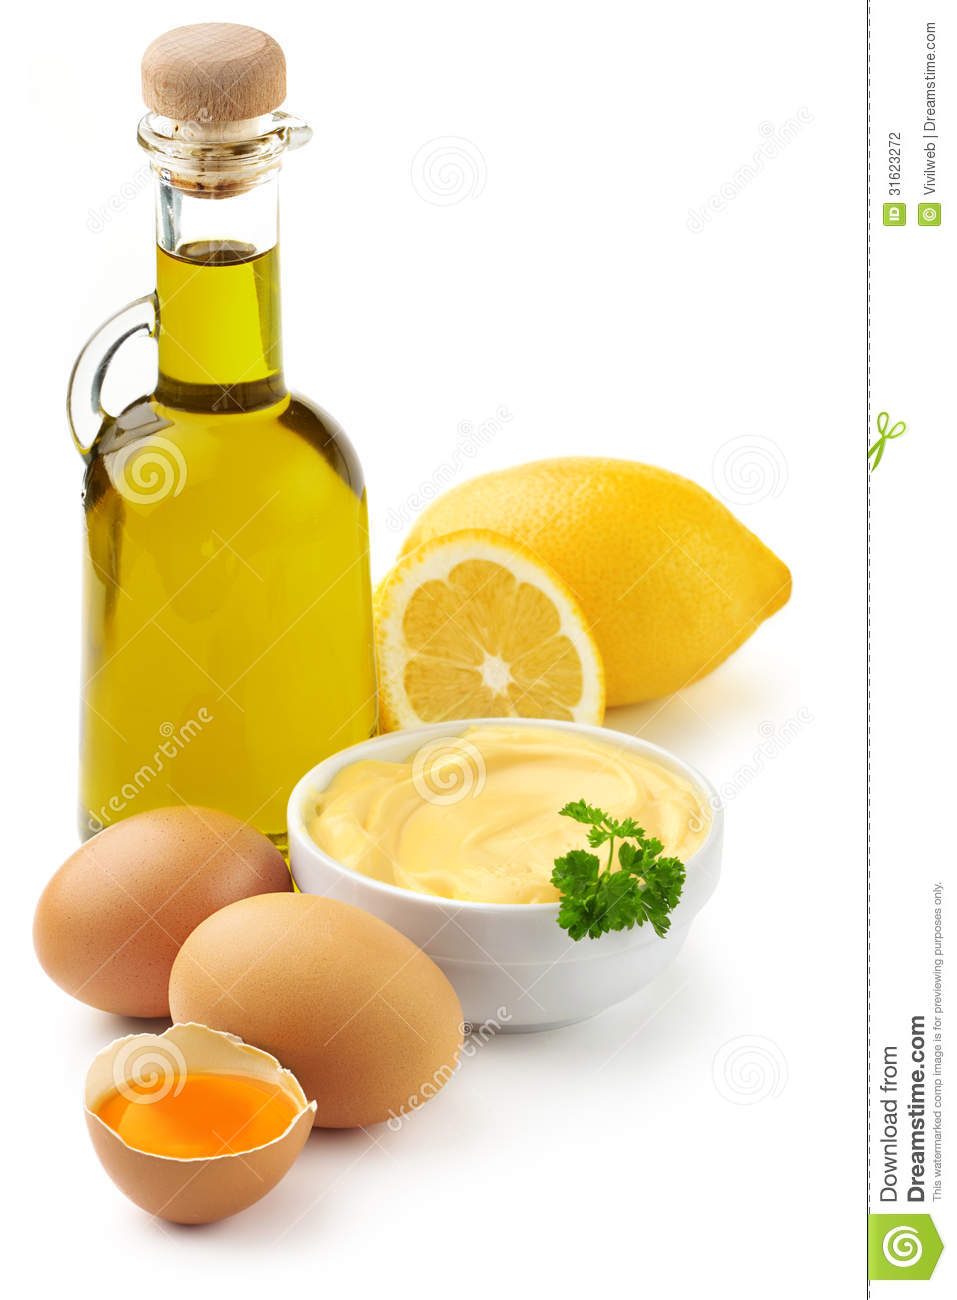 Mayonnaise ingredients: olive oil, eggs and lemon.